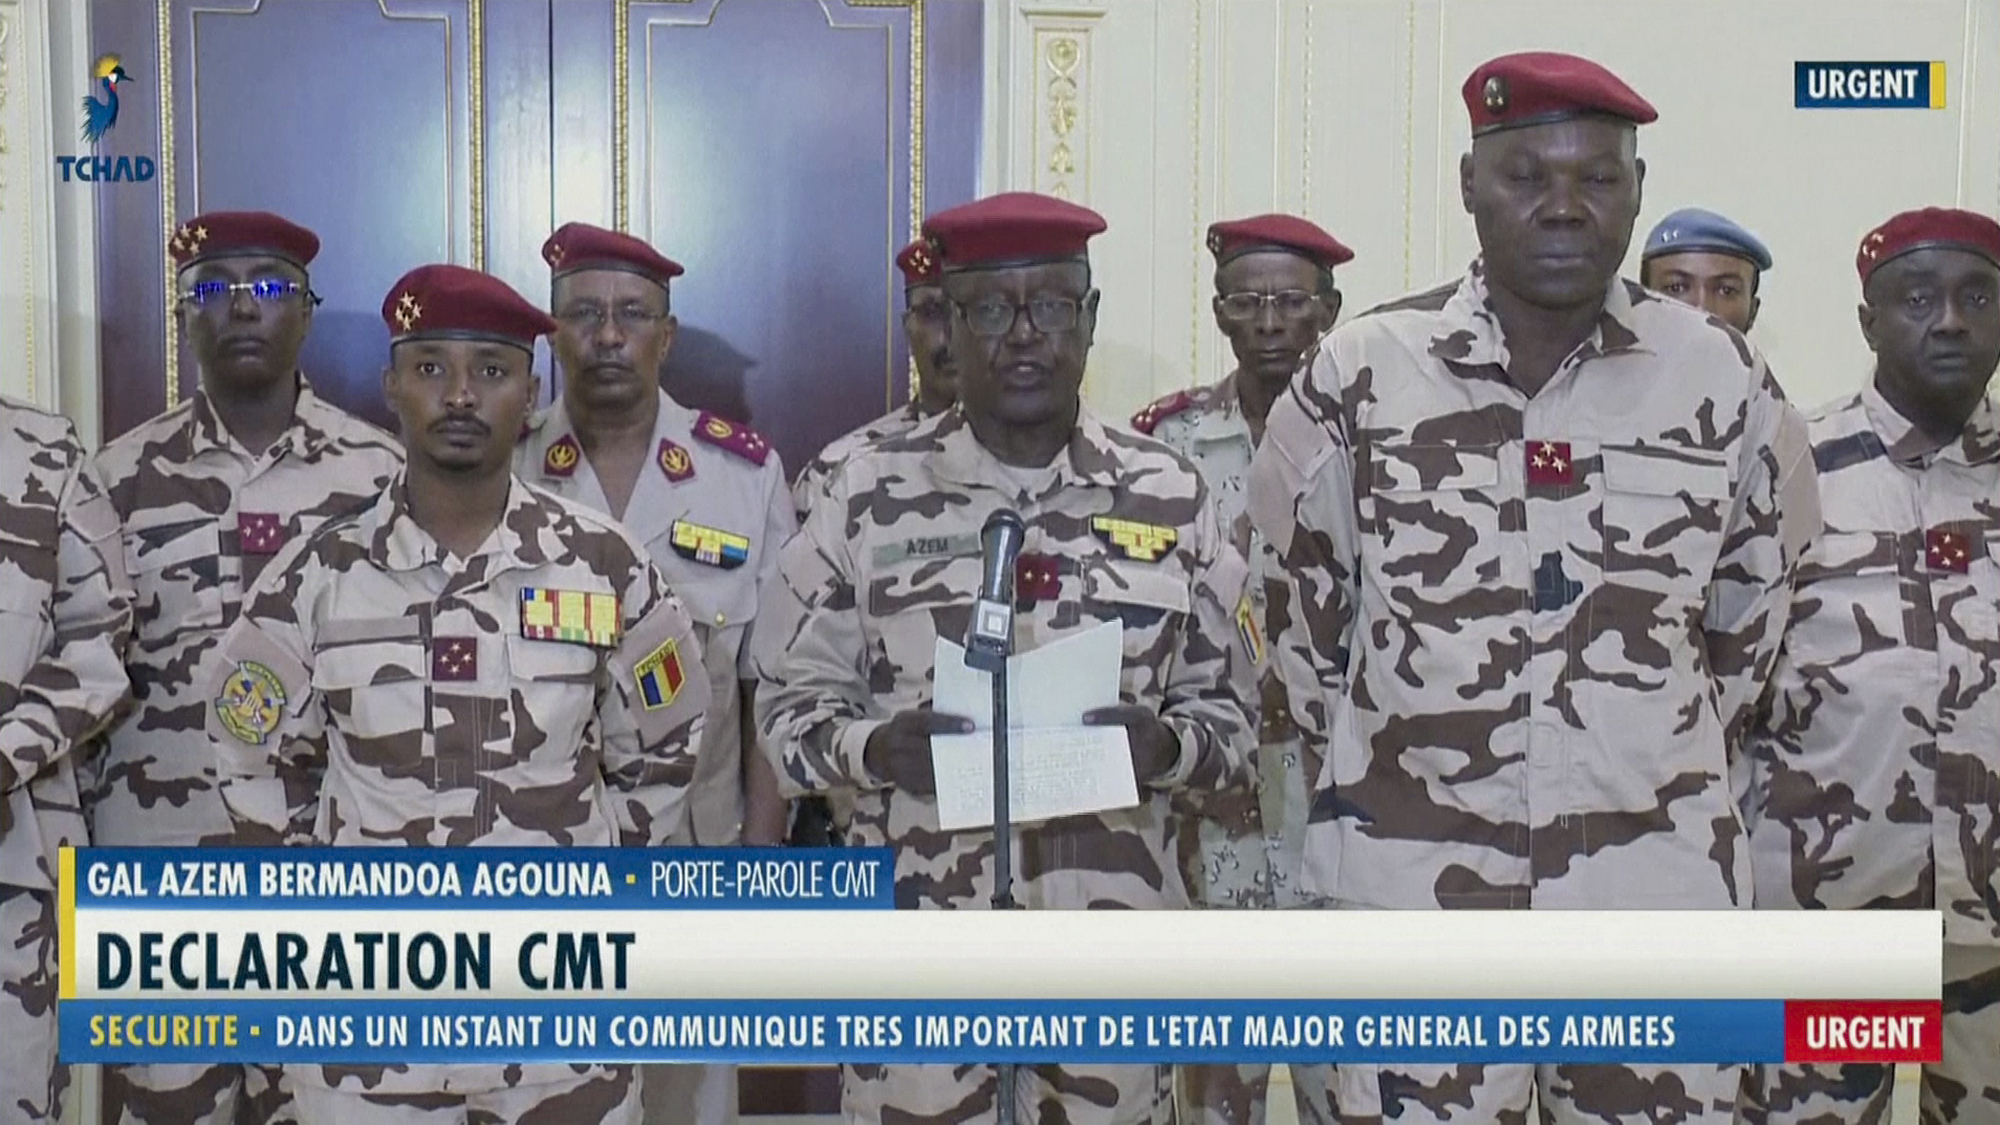 Chad army spokesman General Azem Bermandoa Agouna announces the death of Chadian President Idriss Deby Itno on state television